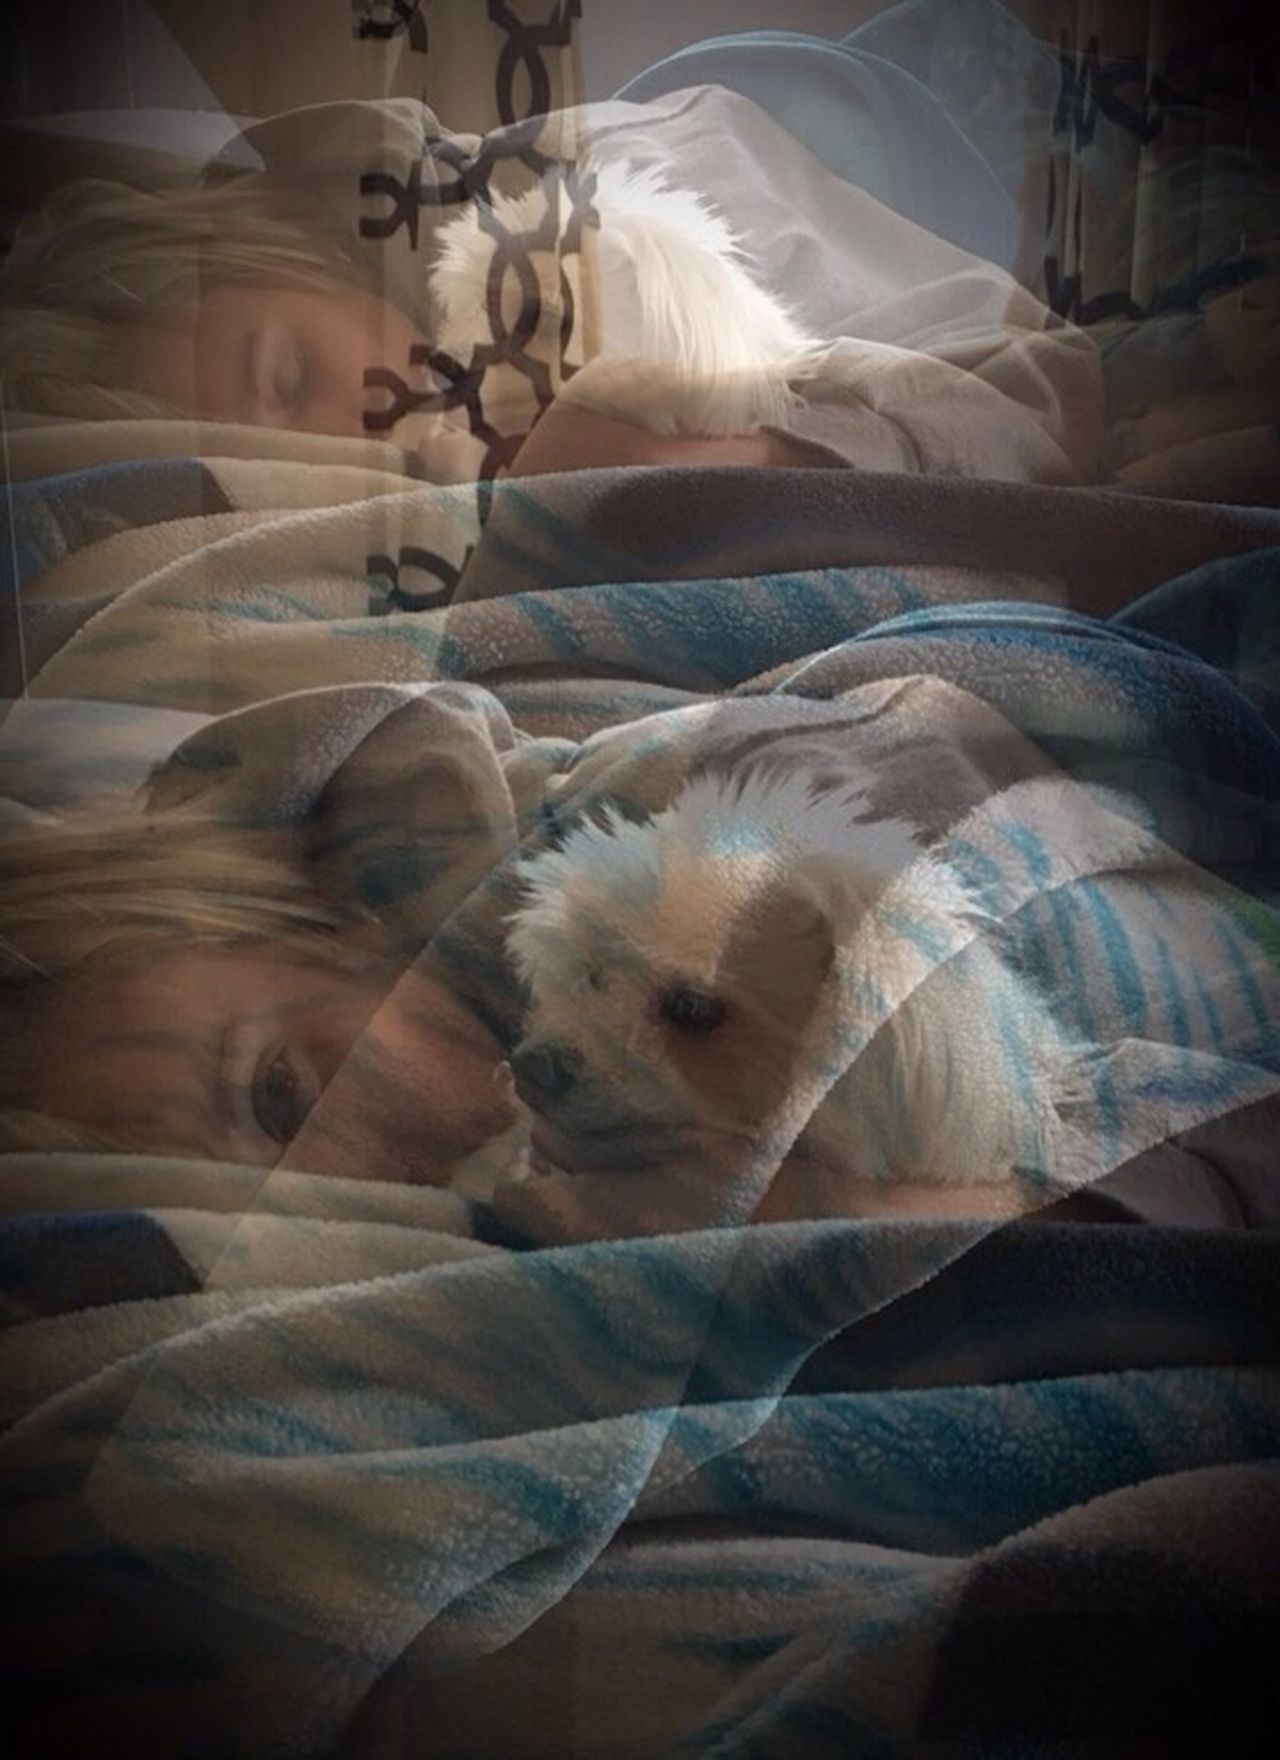 Domestic Animals Pets Dog Bed Relaxation Indoors  Animal Themes Mammal No People Bedroom Close-up Day Photographybybrookechanelle Snugglebuddy Sleeping Edited Artful Editing Experimental Photography Experimental Edit Photo Blending